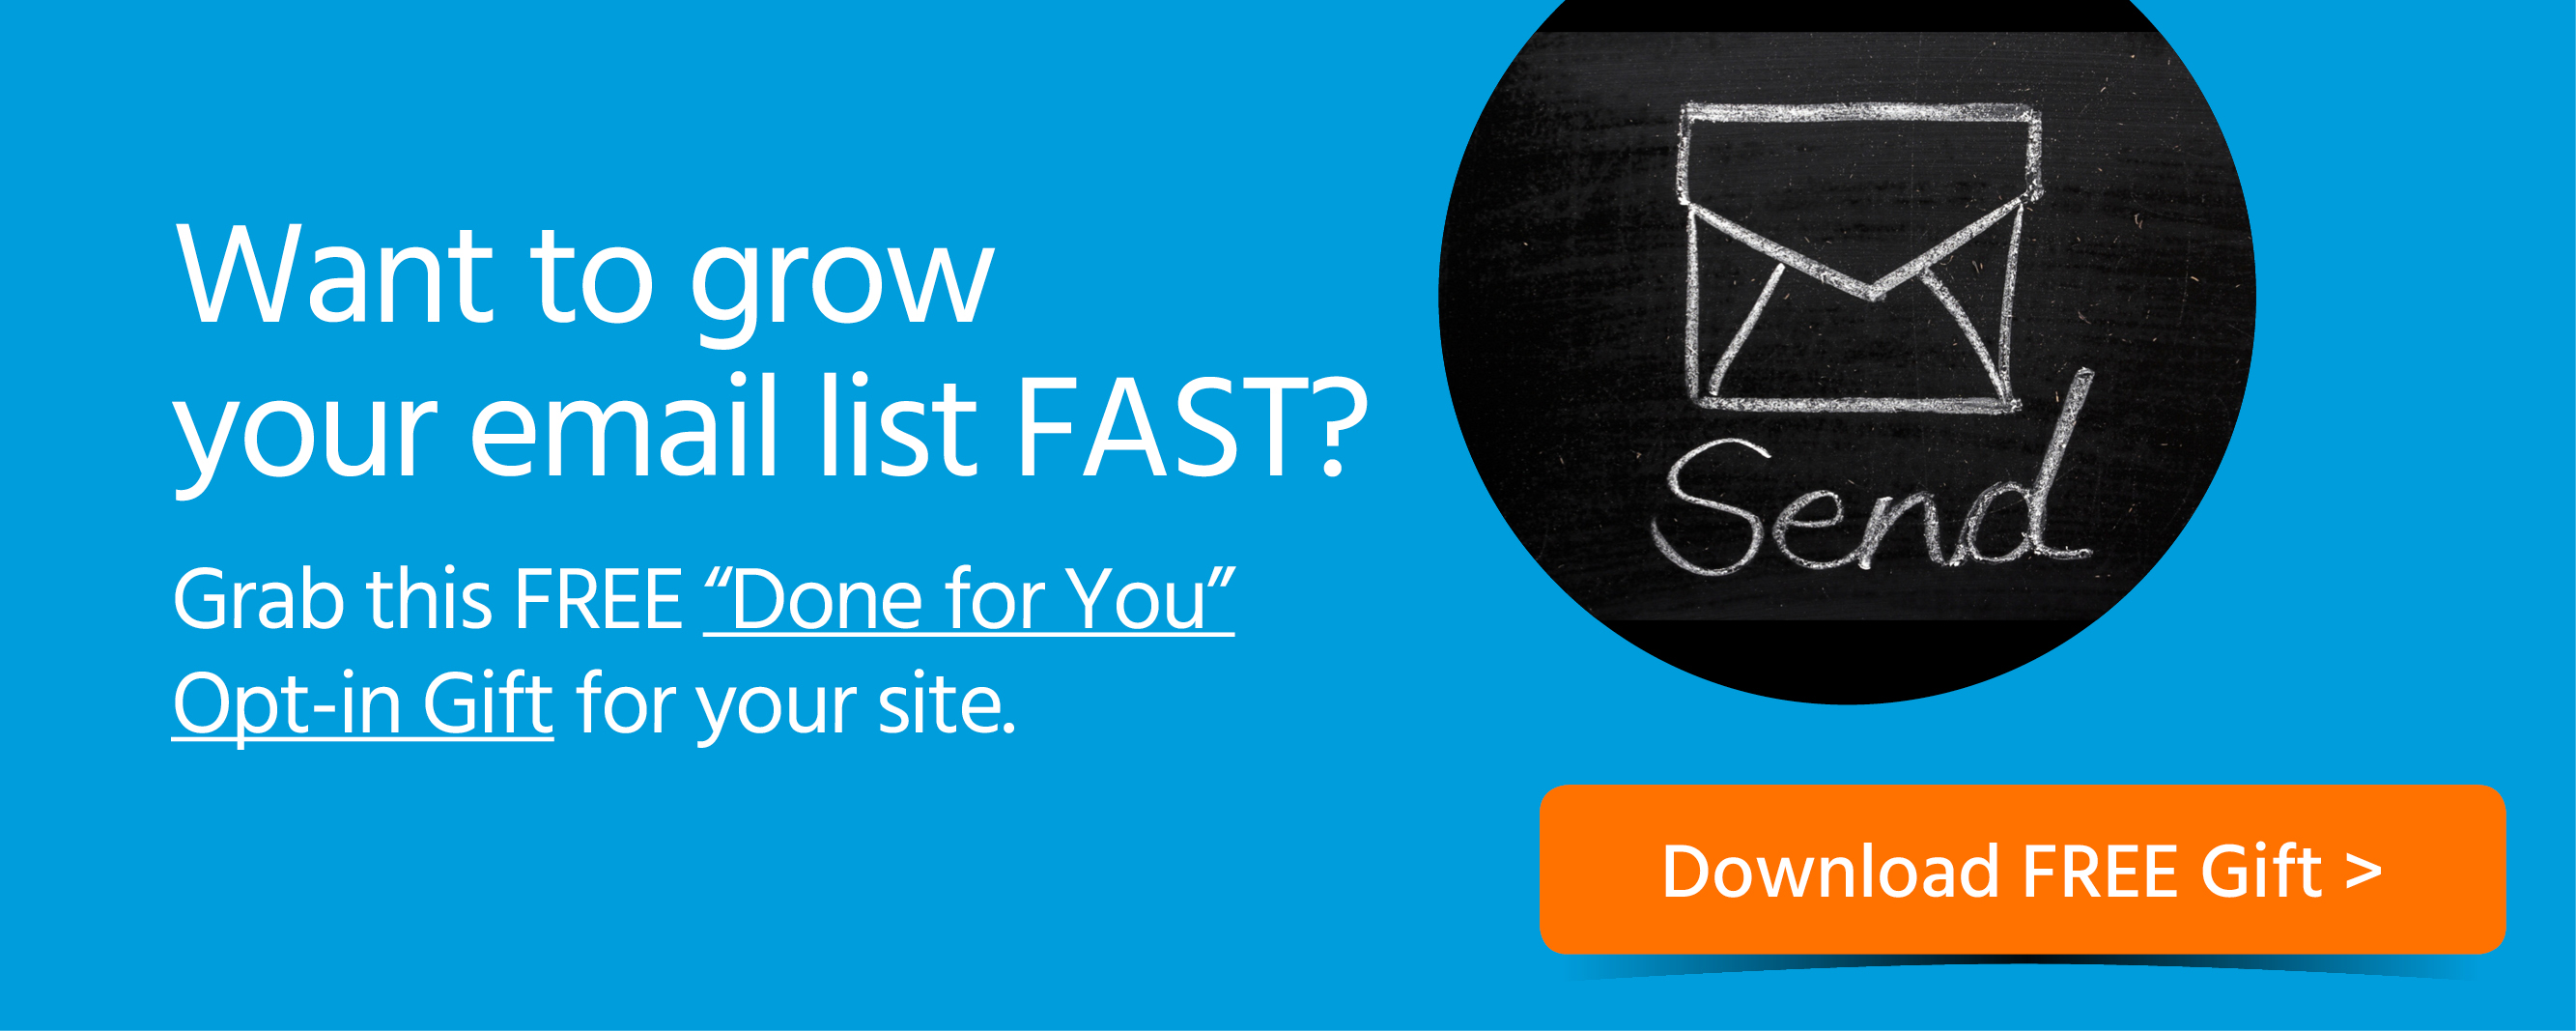 Want to grow email list fast box